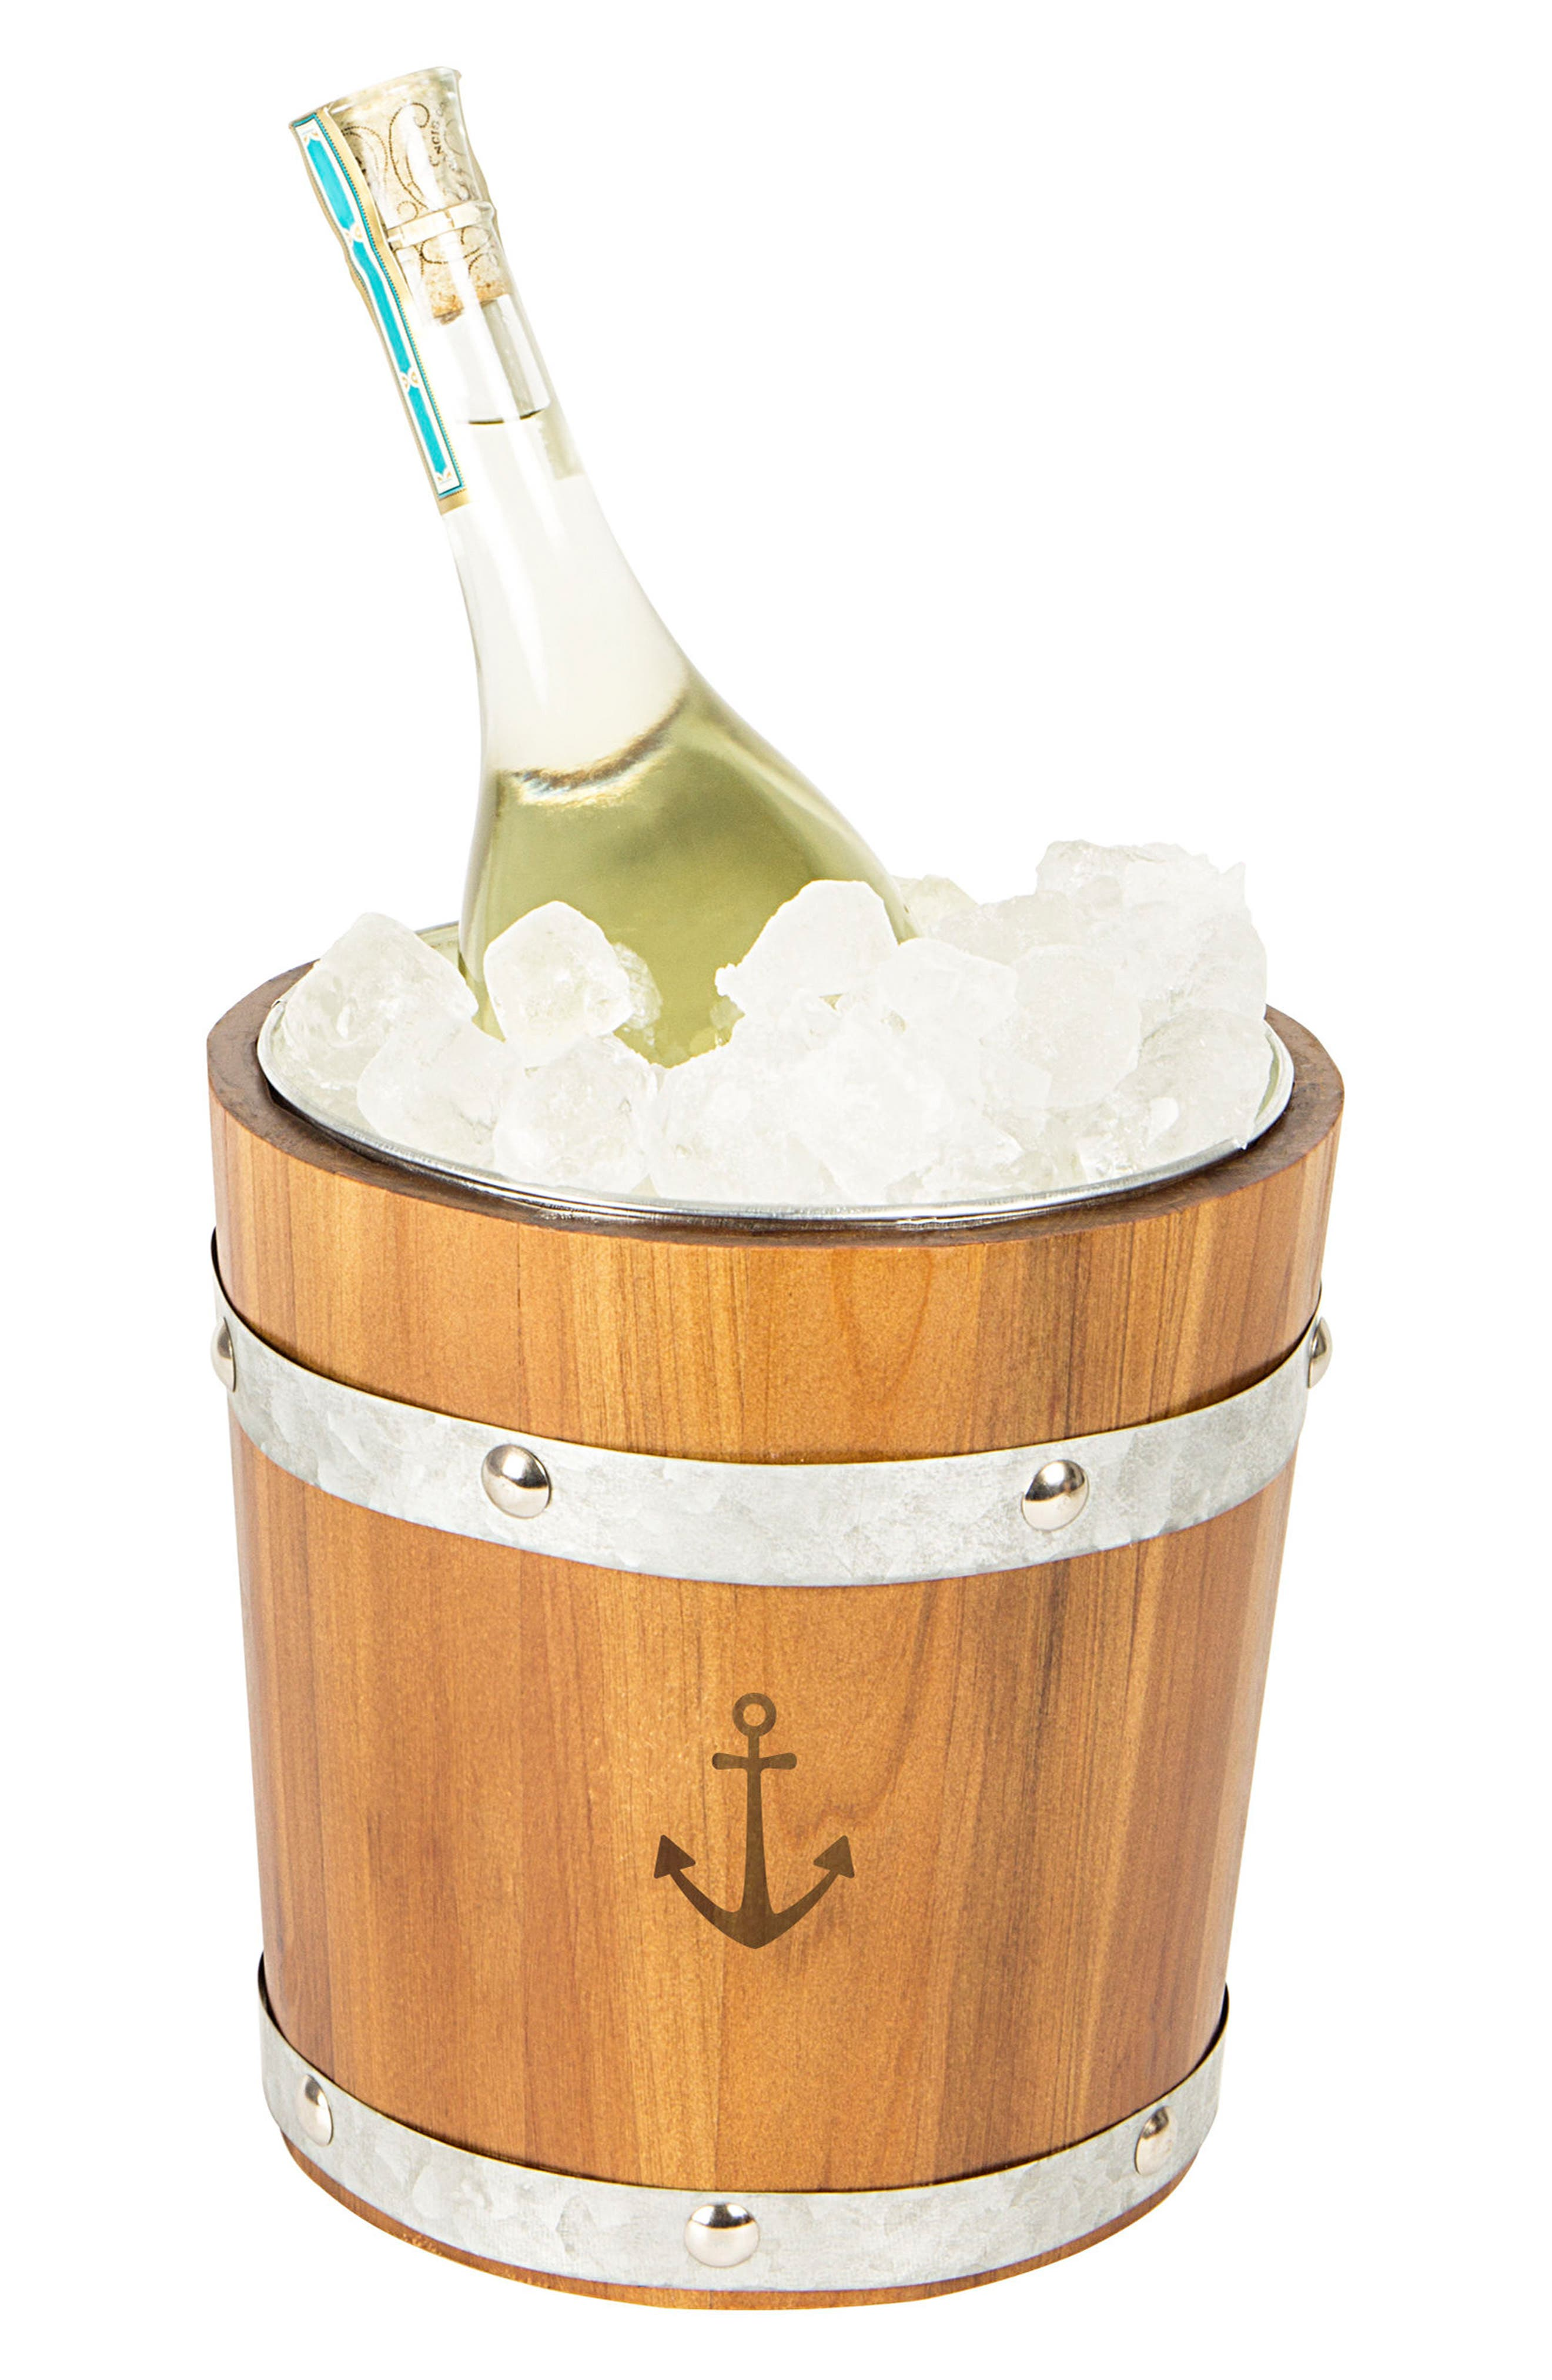 Main Image - Cathy's Concepts Rustic Anchor Ice Bucket